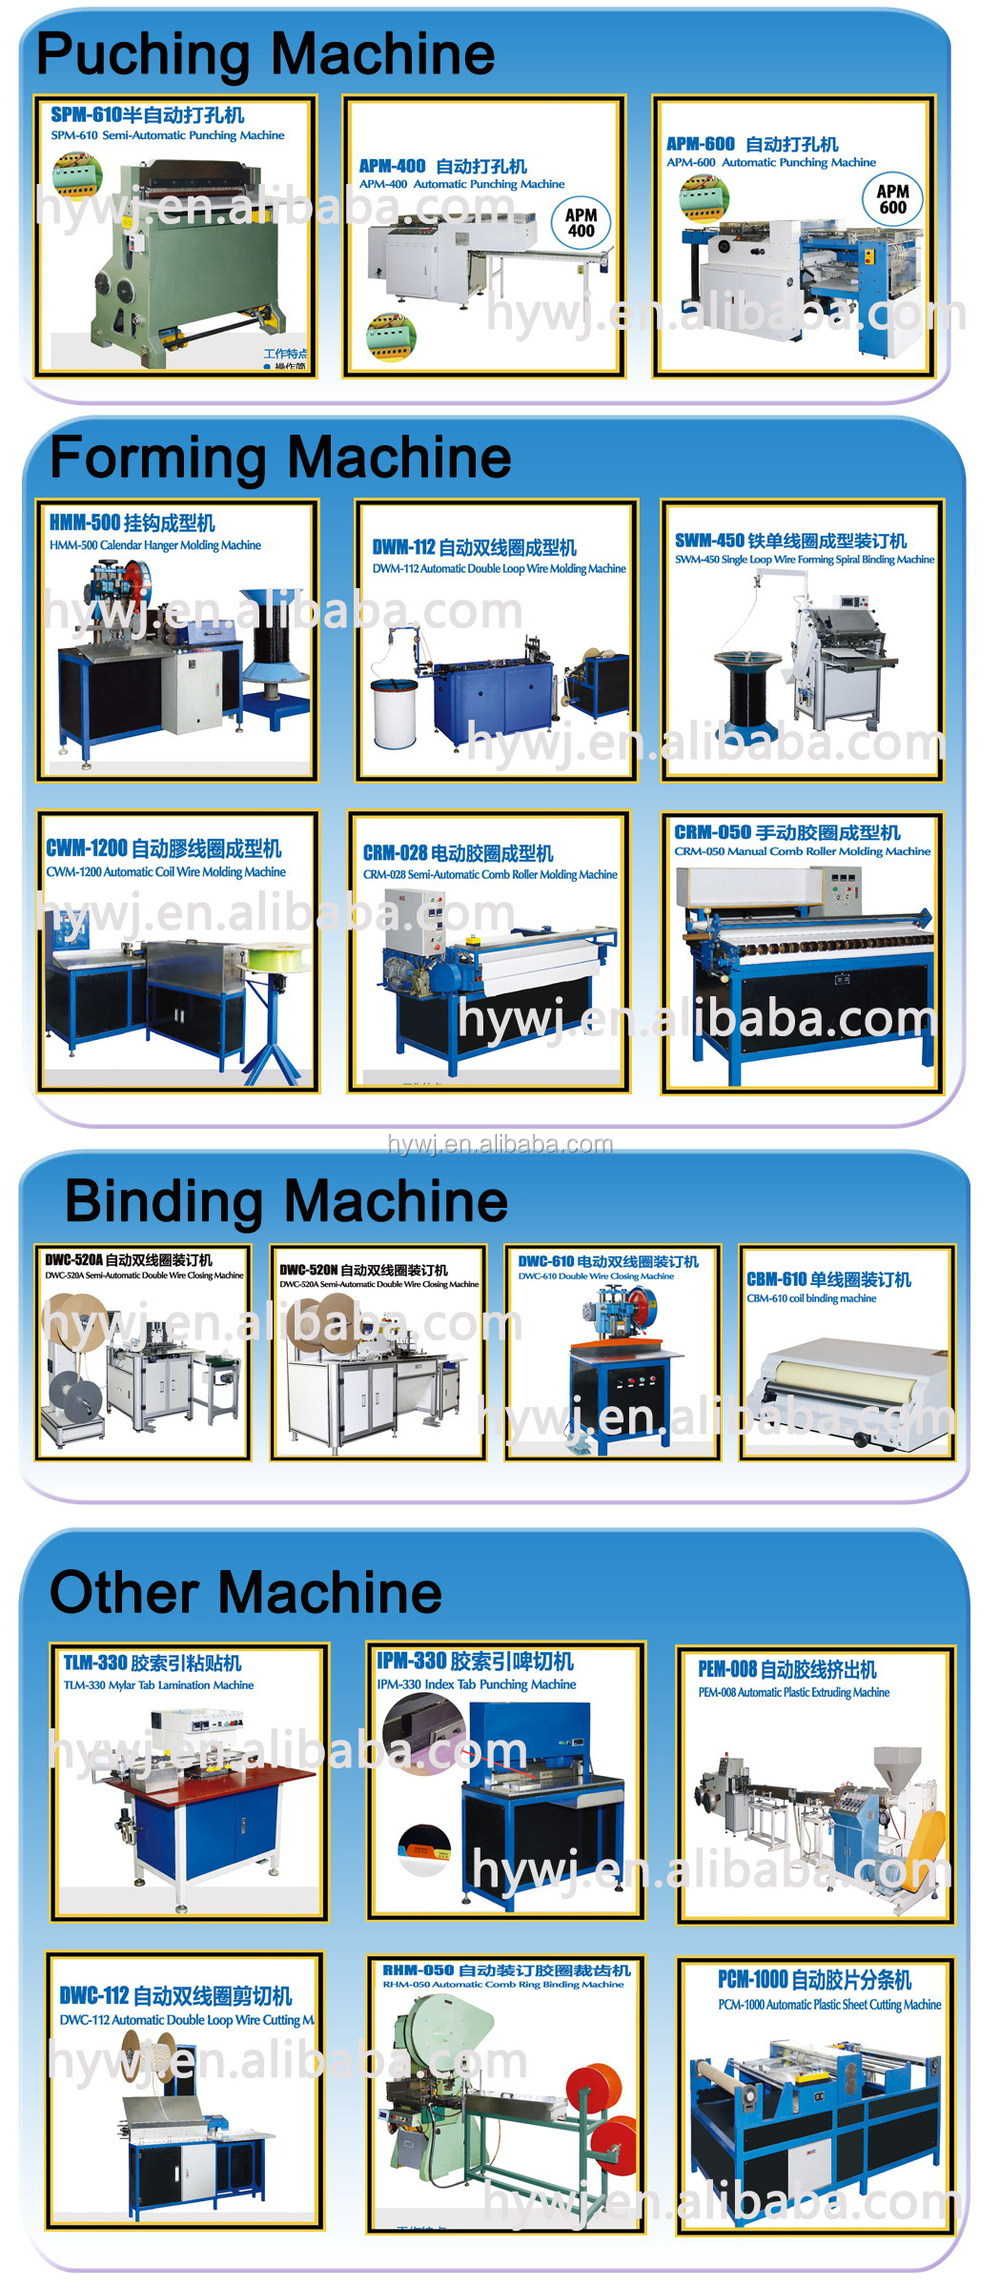 hot sale Double Wire hole Plastic Coil hole Binding Comb hole Paper Punching Machine with CE